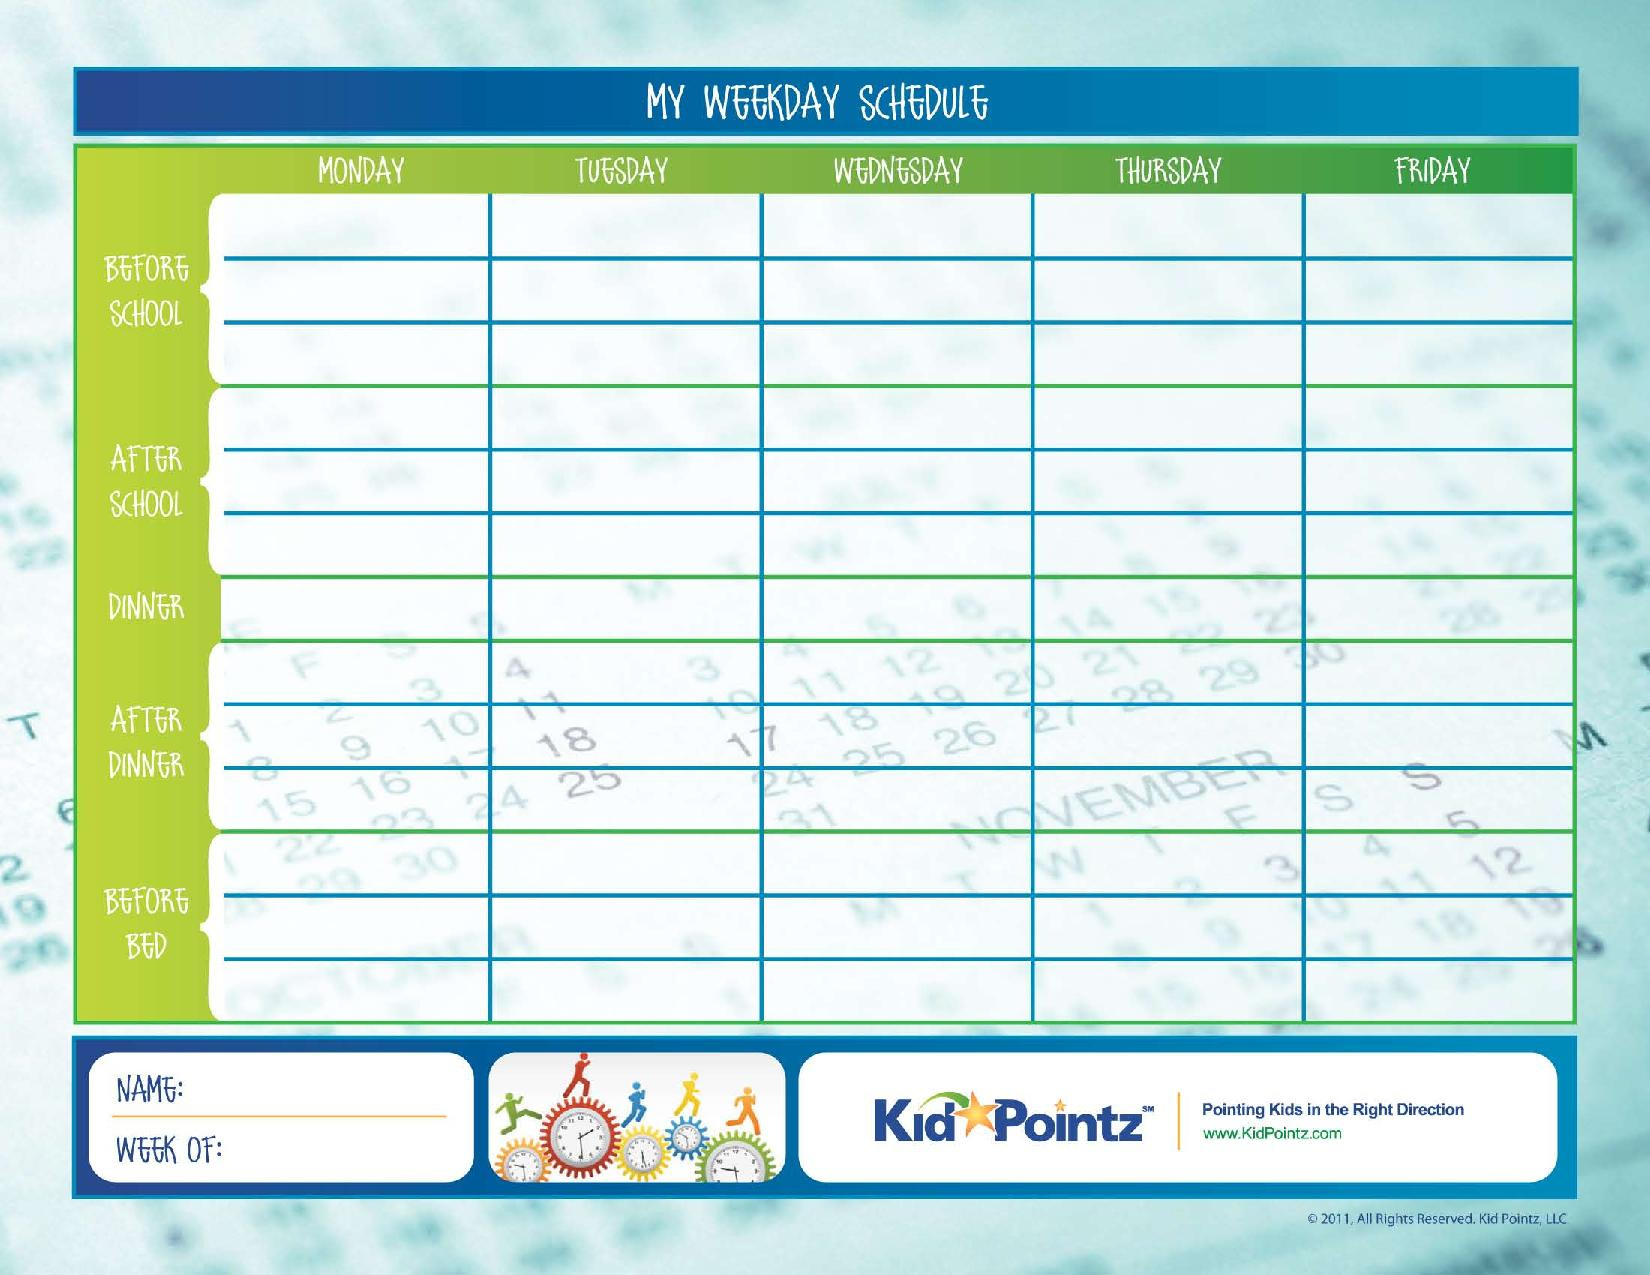 Daily Routine Charts For Kids Collection (25 Pages)   Personal Hygiene - Children's Routine Charts Free Printable